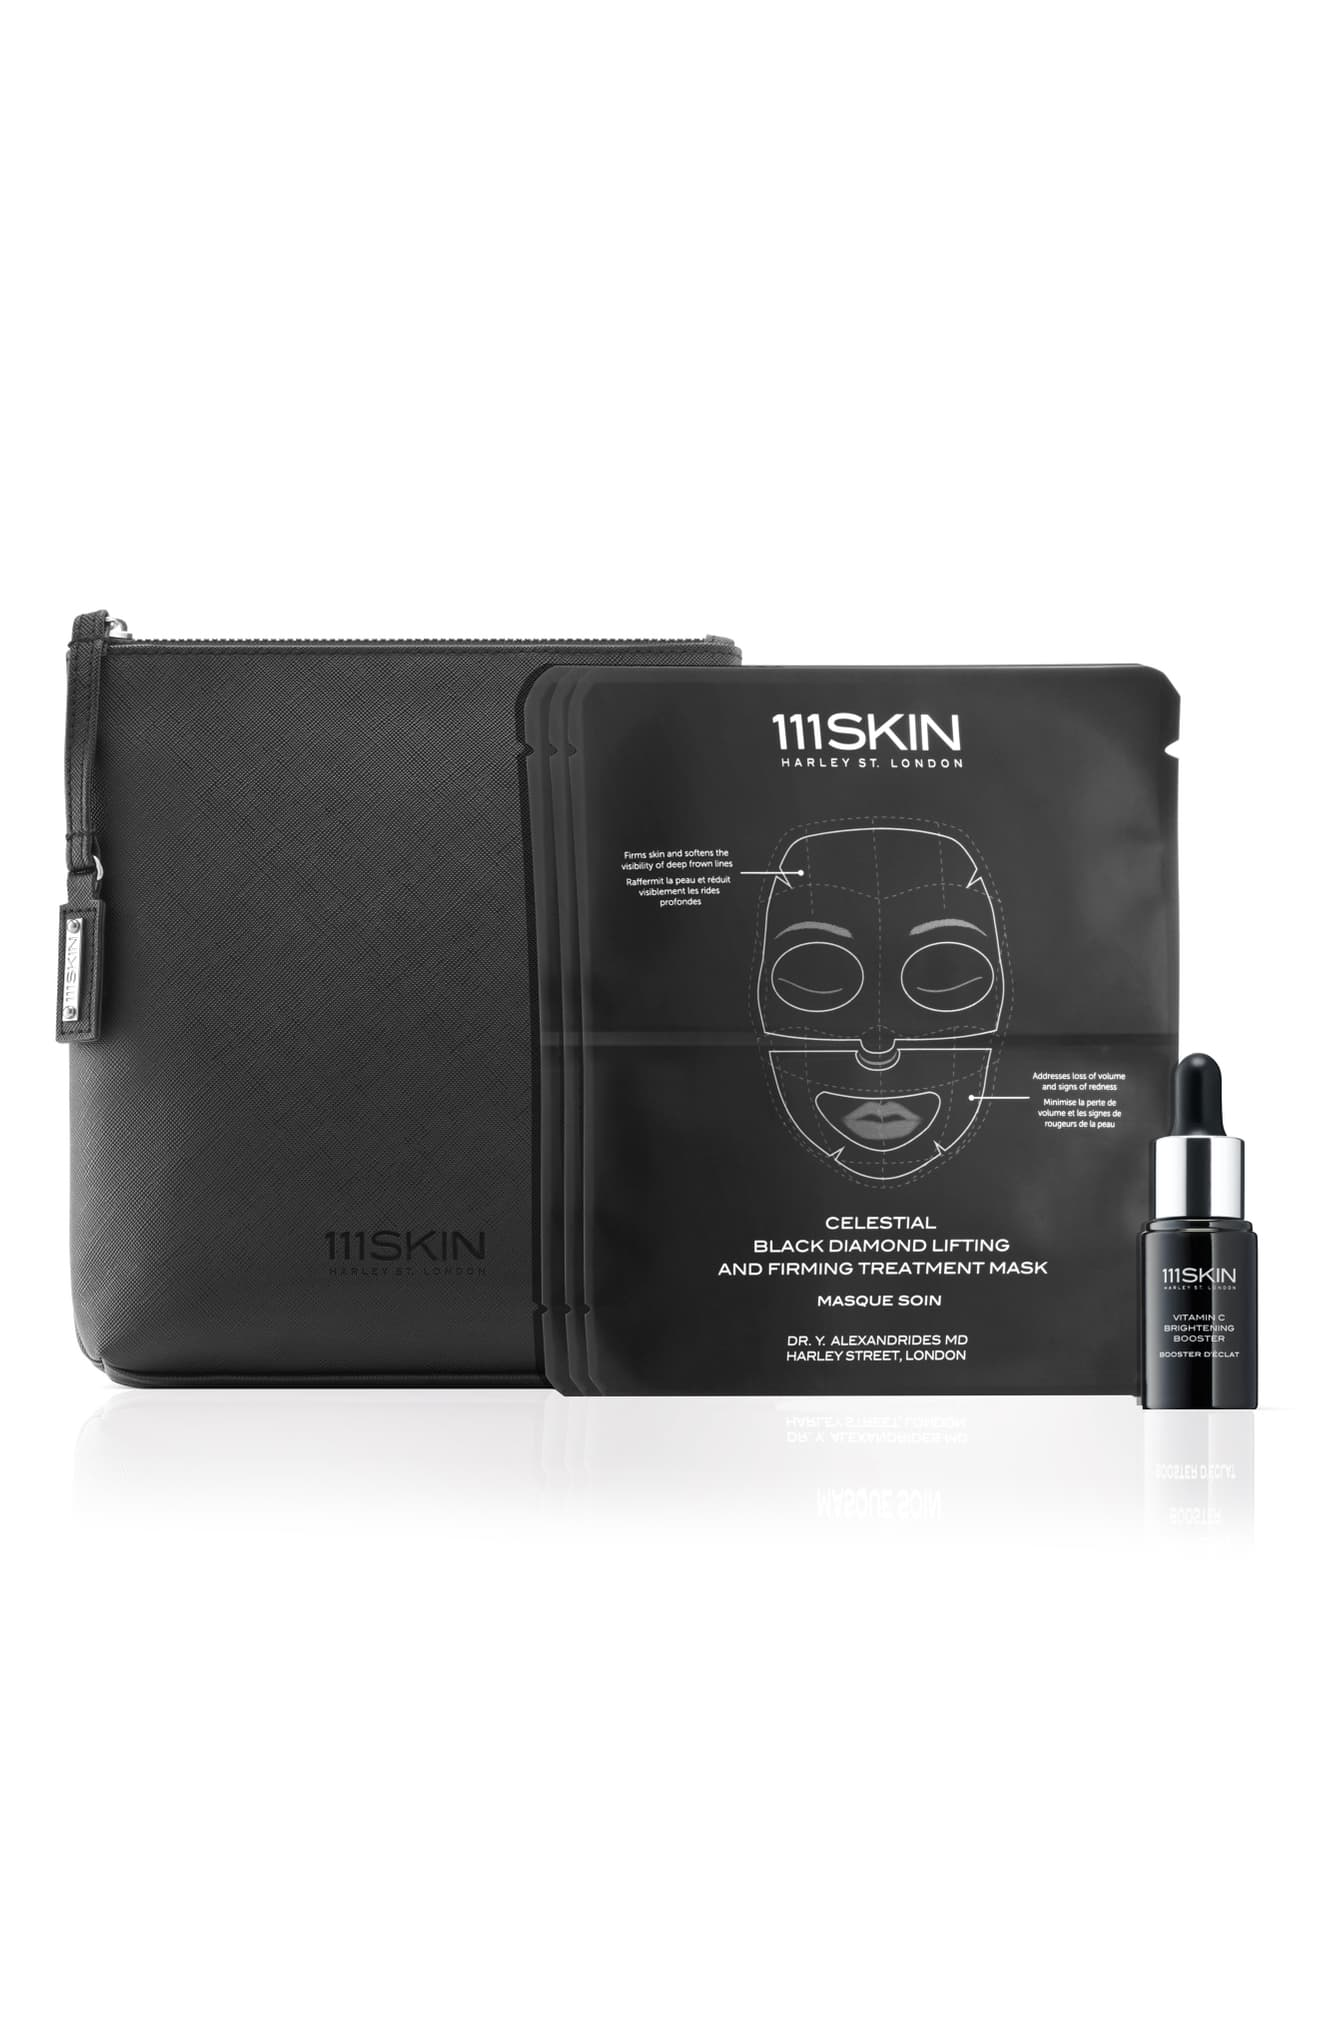 111SKIN The Rejuvenating Bag Intensive Set